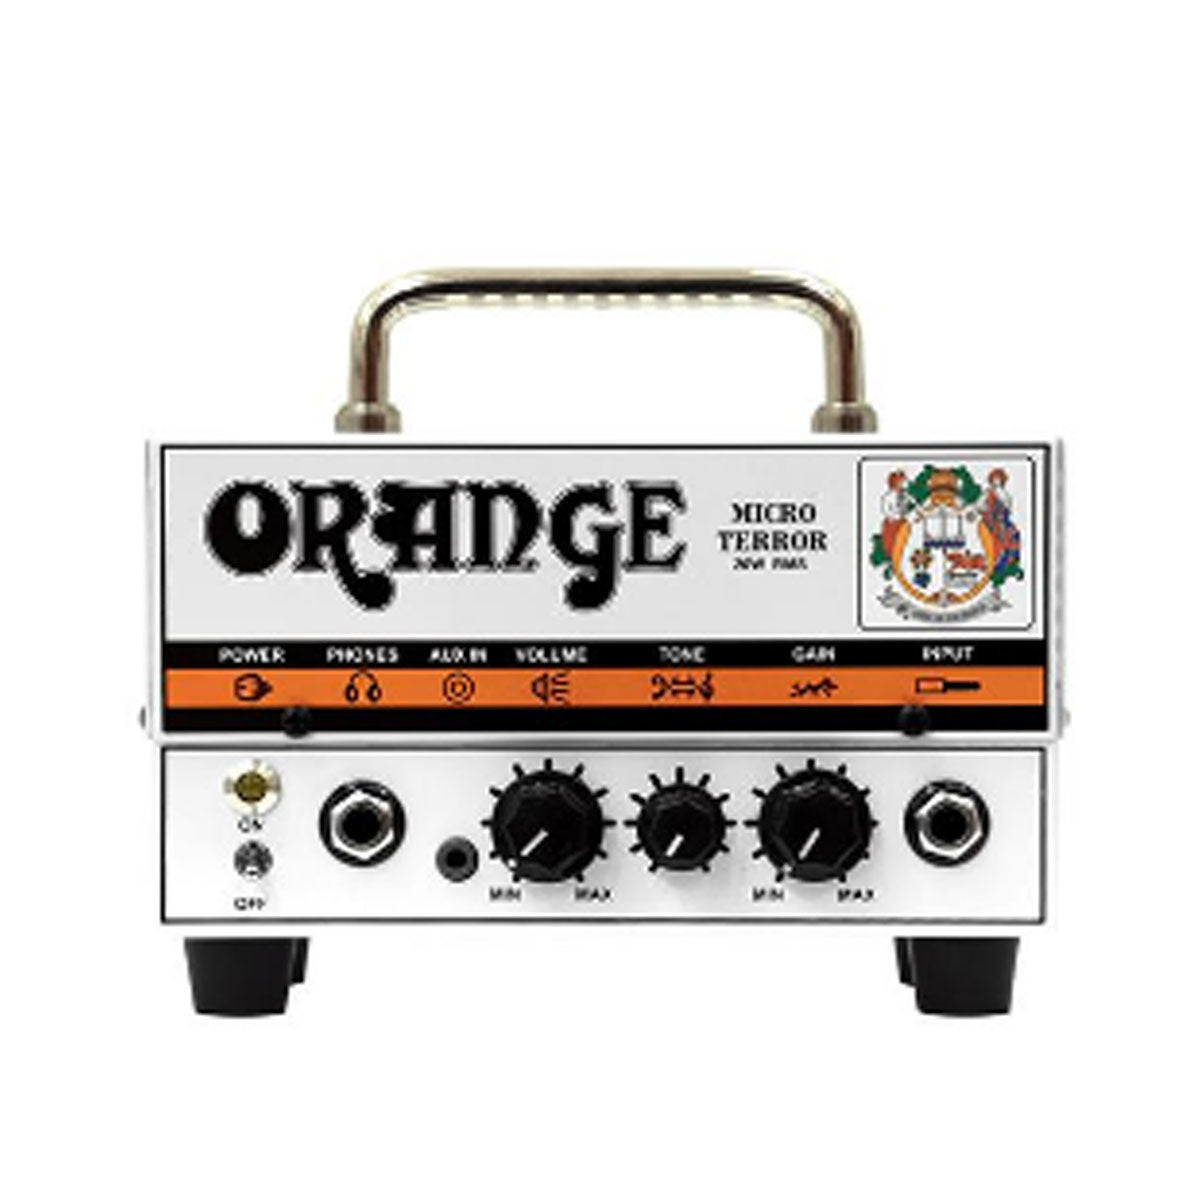 Orange MT20 Micro Terror Guitar Amplifier 20w Head Amp